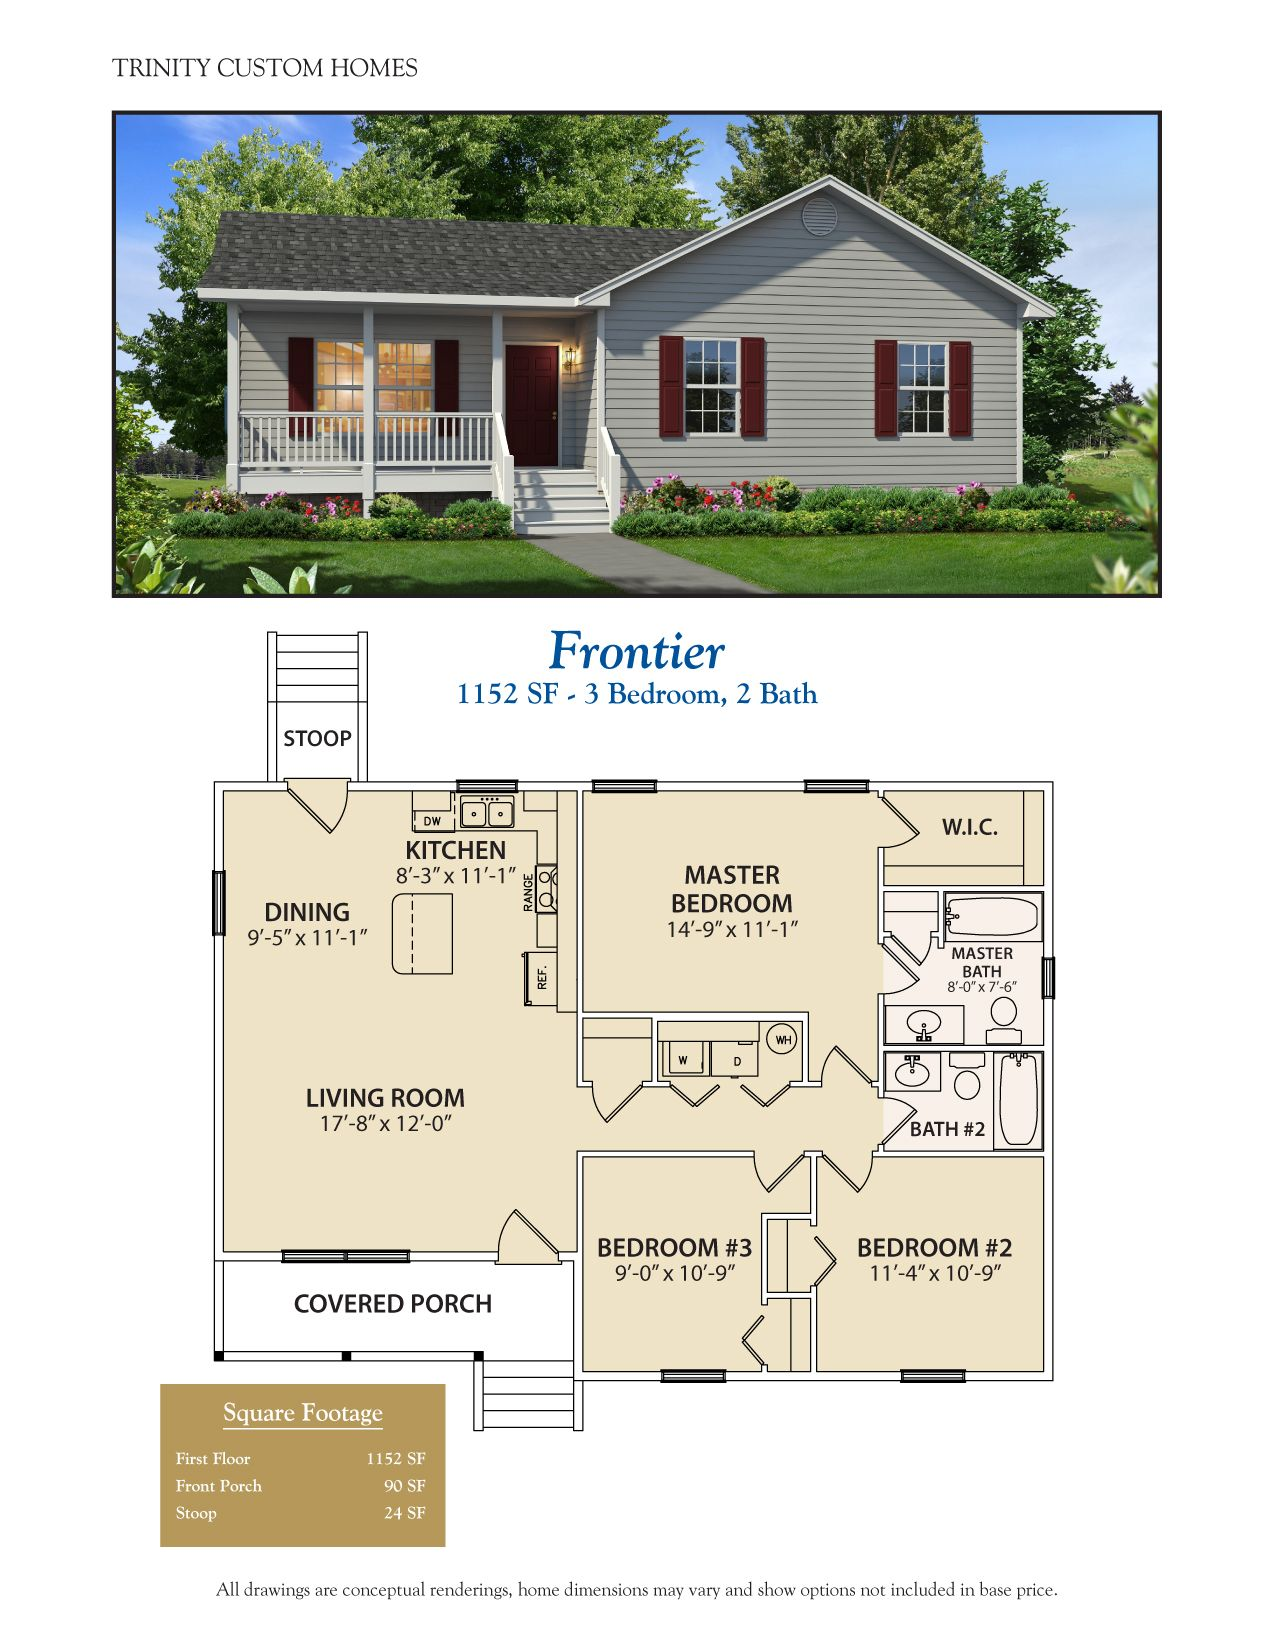 Take A Look At All Of Trinity Custom Homes Georgia Floor Plans Here We Have Lot To Offer So Contact Us Today For More Information